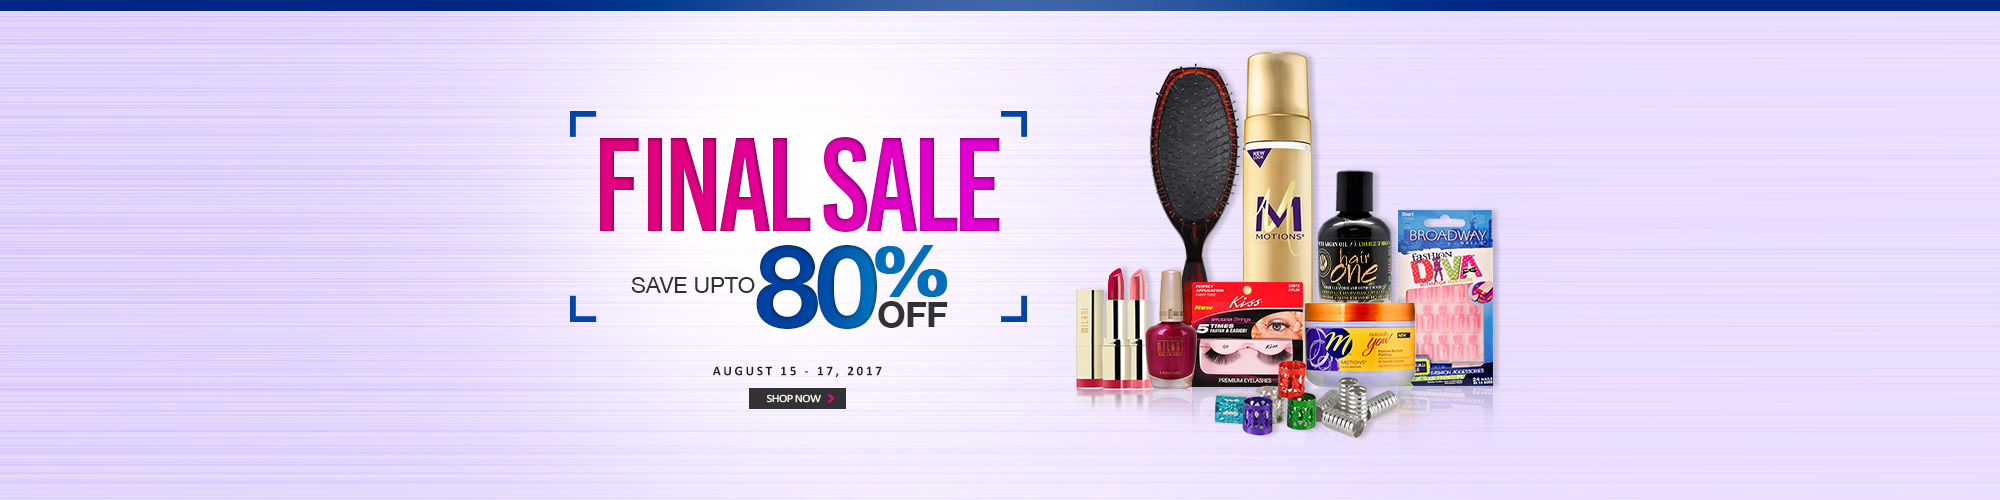 FINAL SALE! - BEAUTY ESSENTIALS